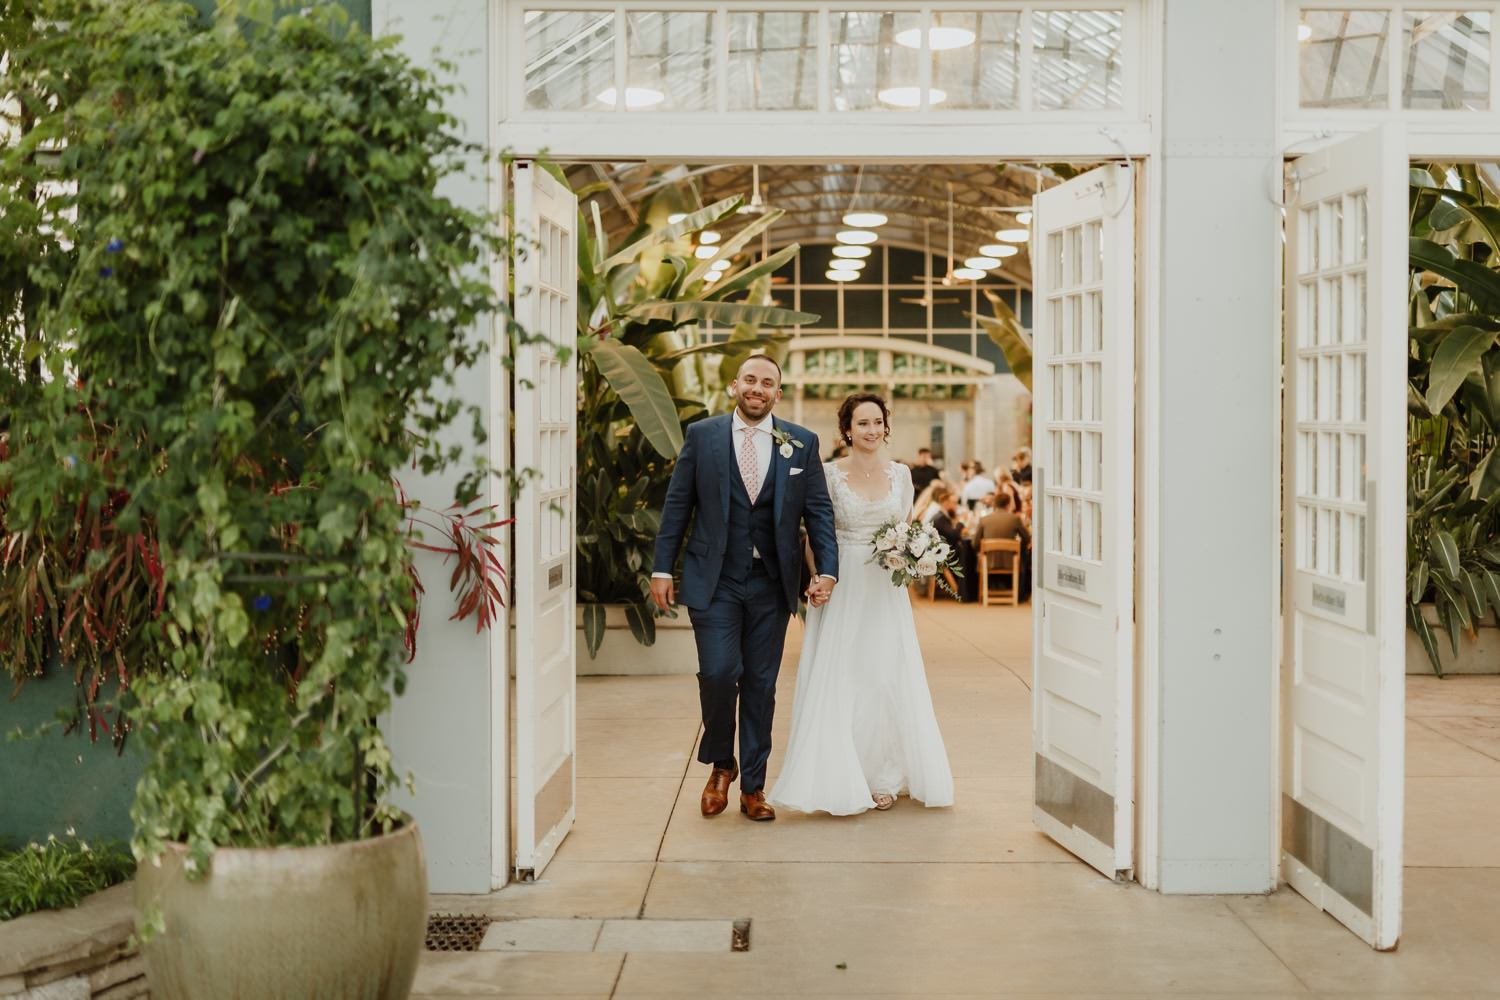 bride and groom walk for the portrait session at Garfield Park Conservatory